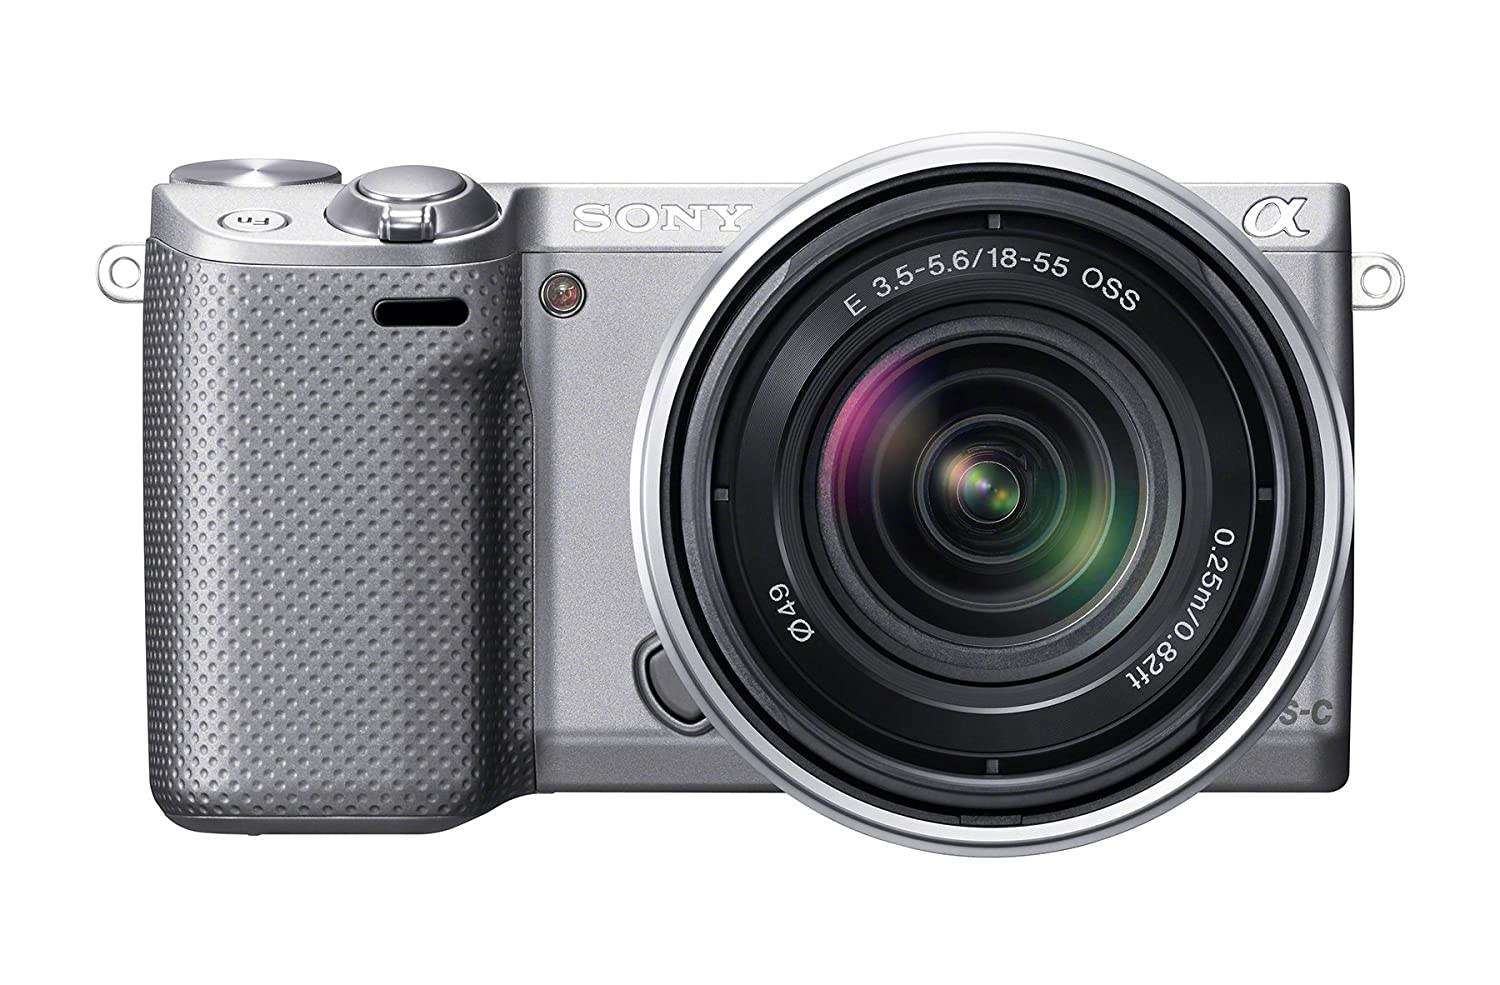 Sony NEX-5RK/B 16.1 MP Compact Interchangeable Lens Digital Camera with 18-55mm Lenses (Black)